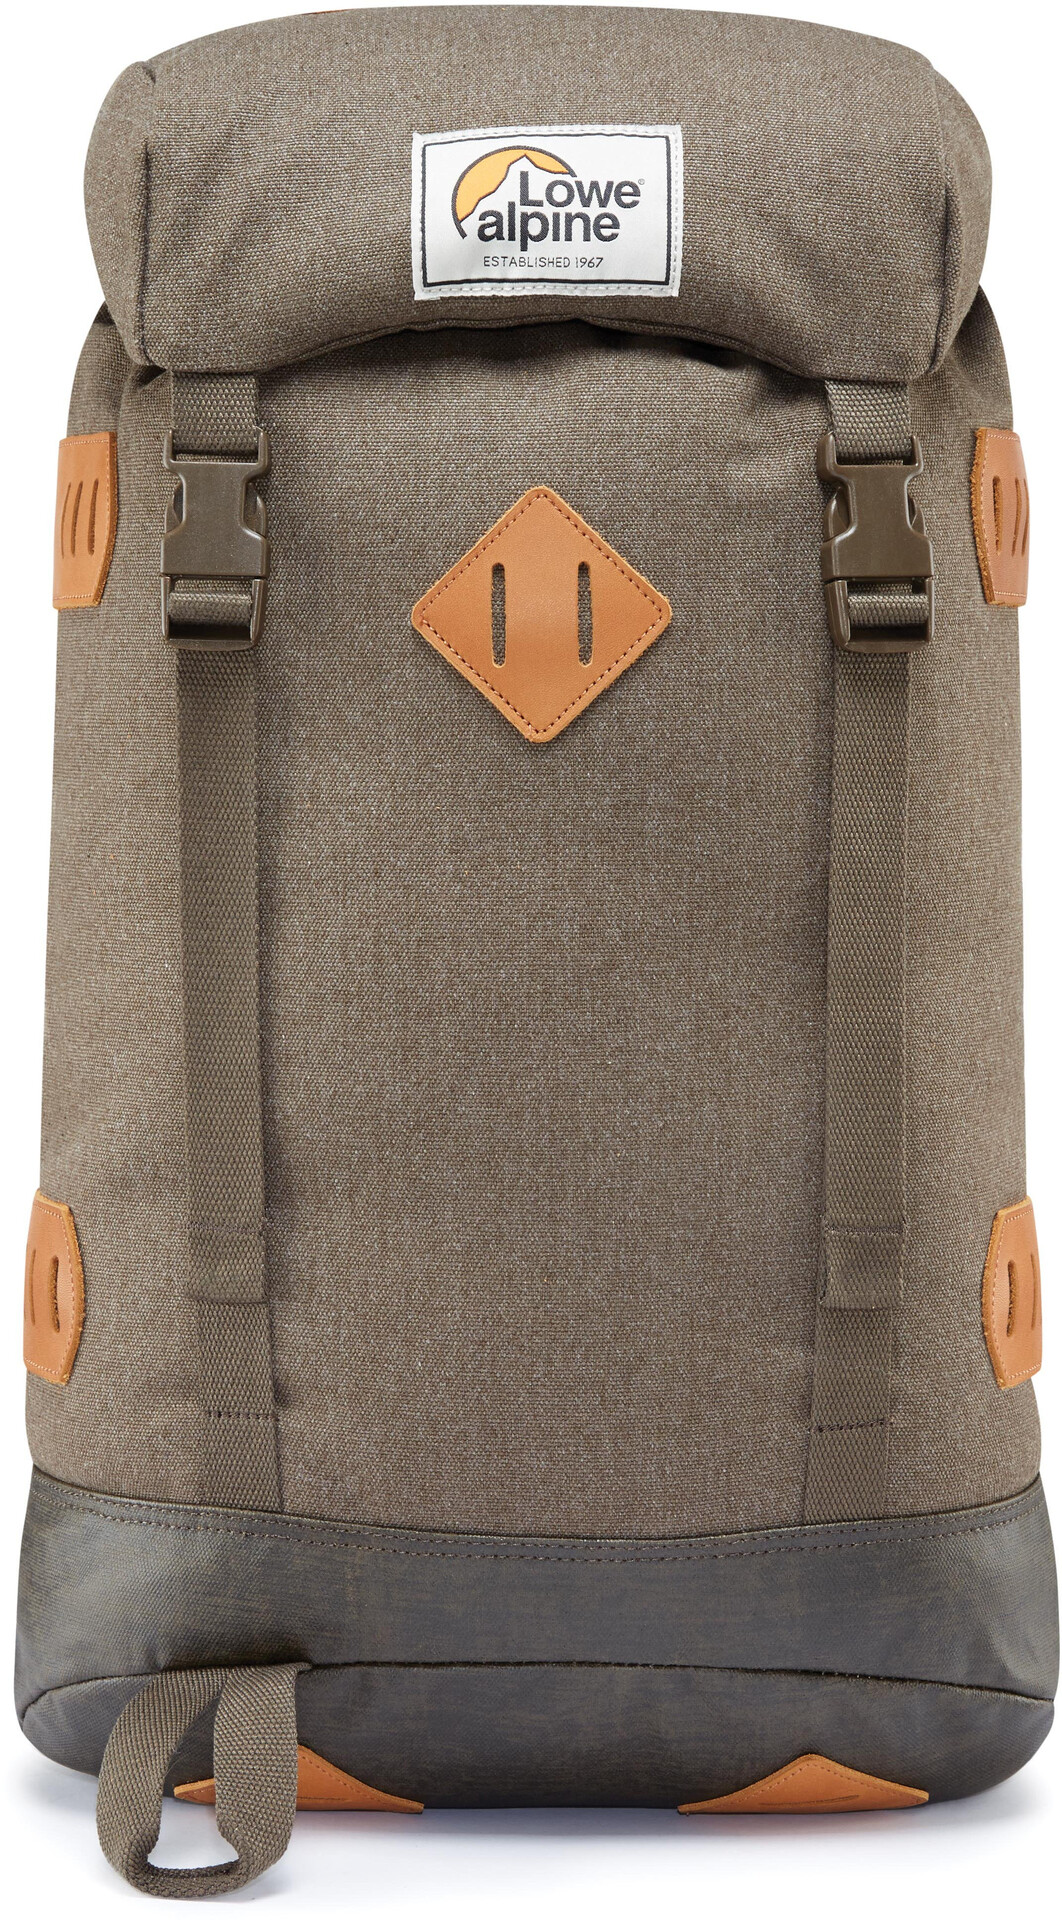 Lowe Alpine Klettersack 30 Backpack brownstone